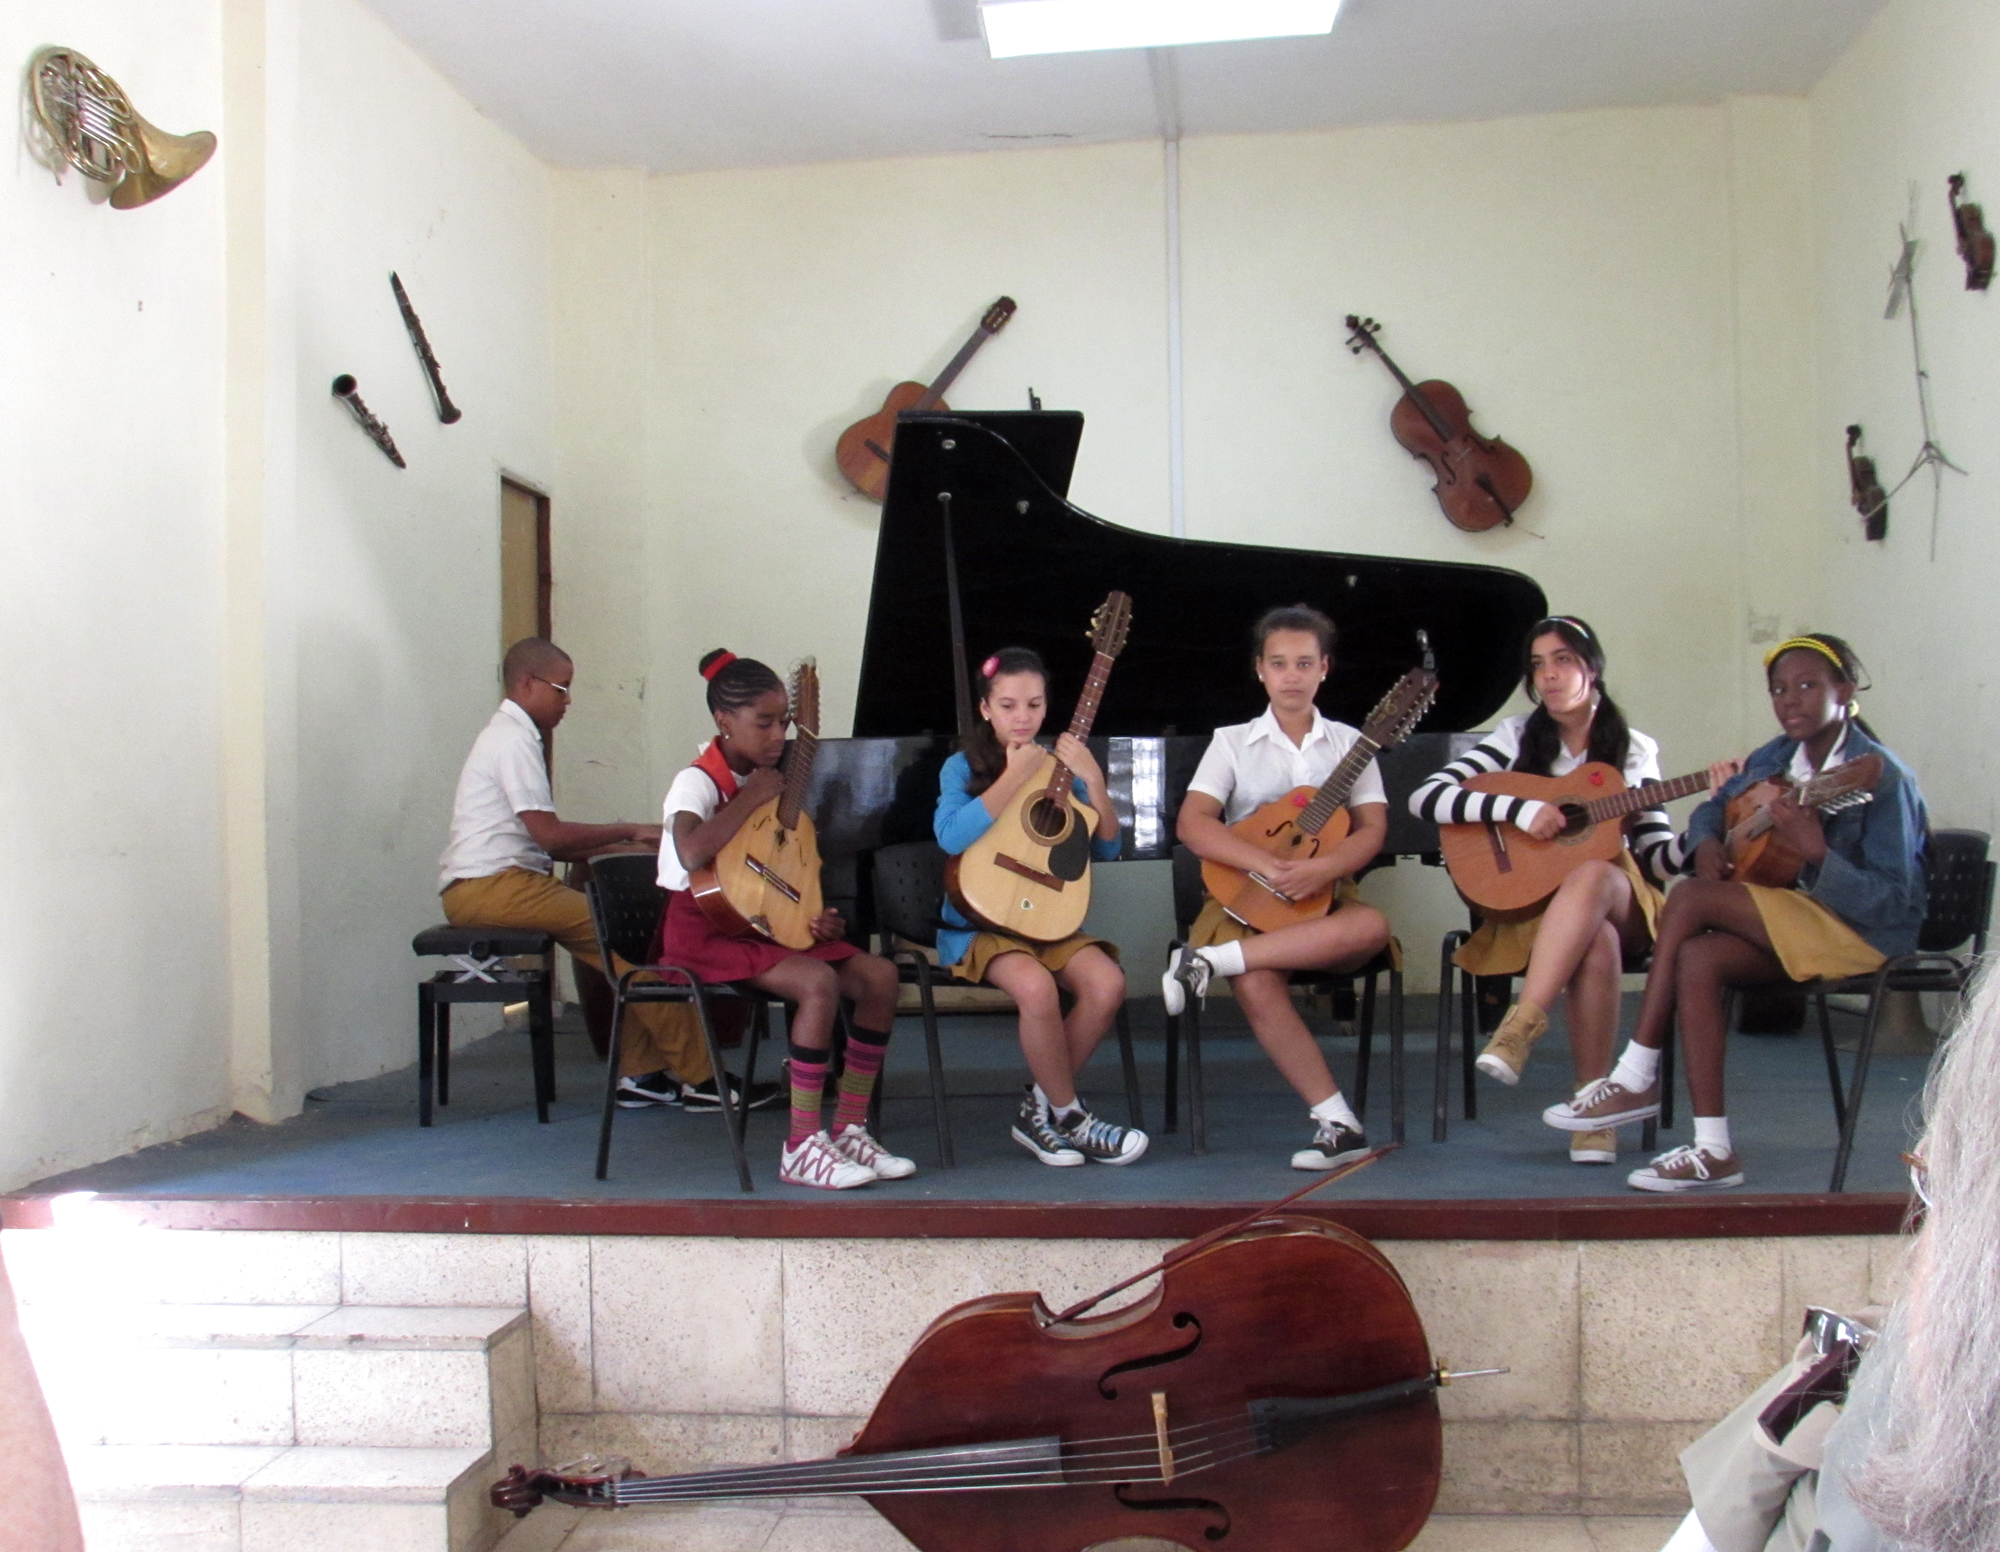 Students at Escuela Elemental waiting to play guitar